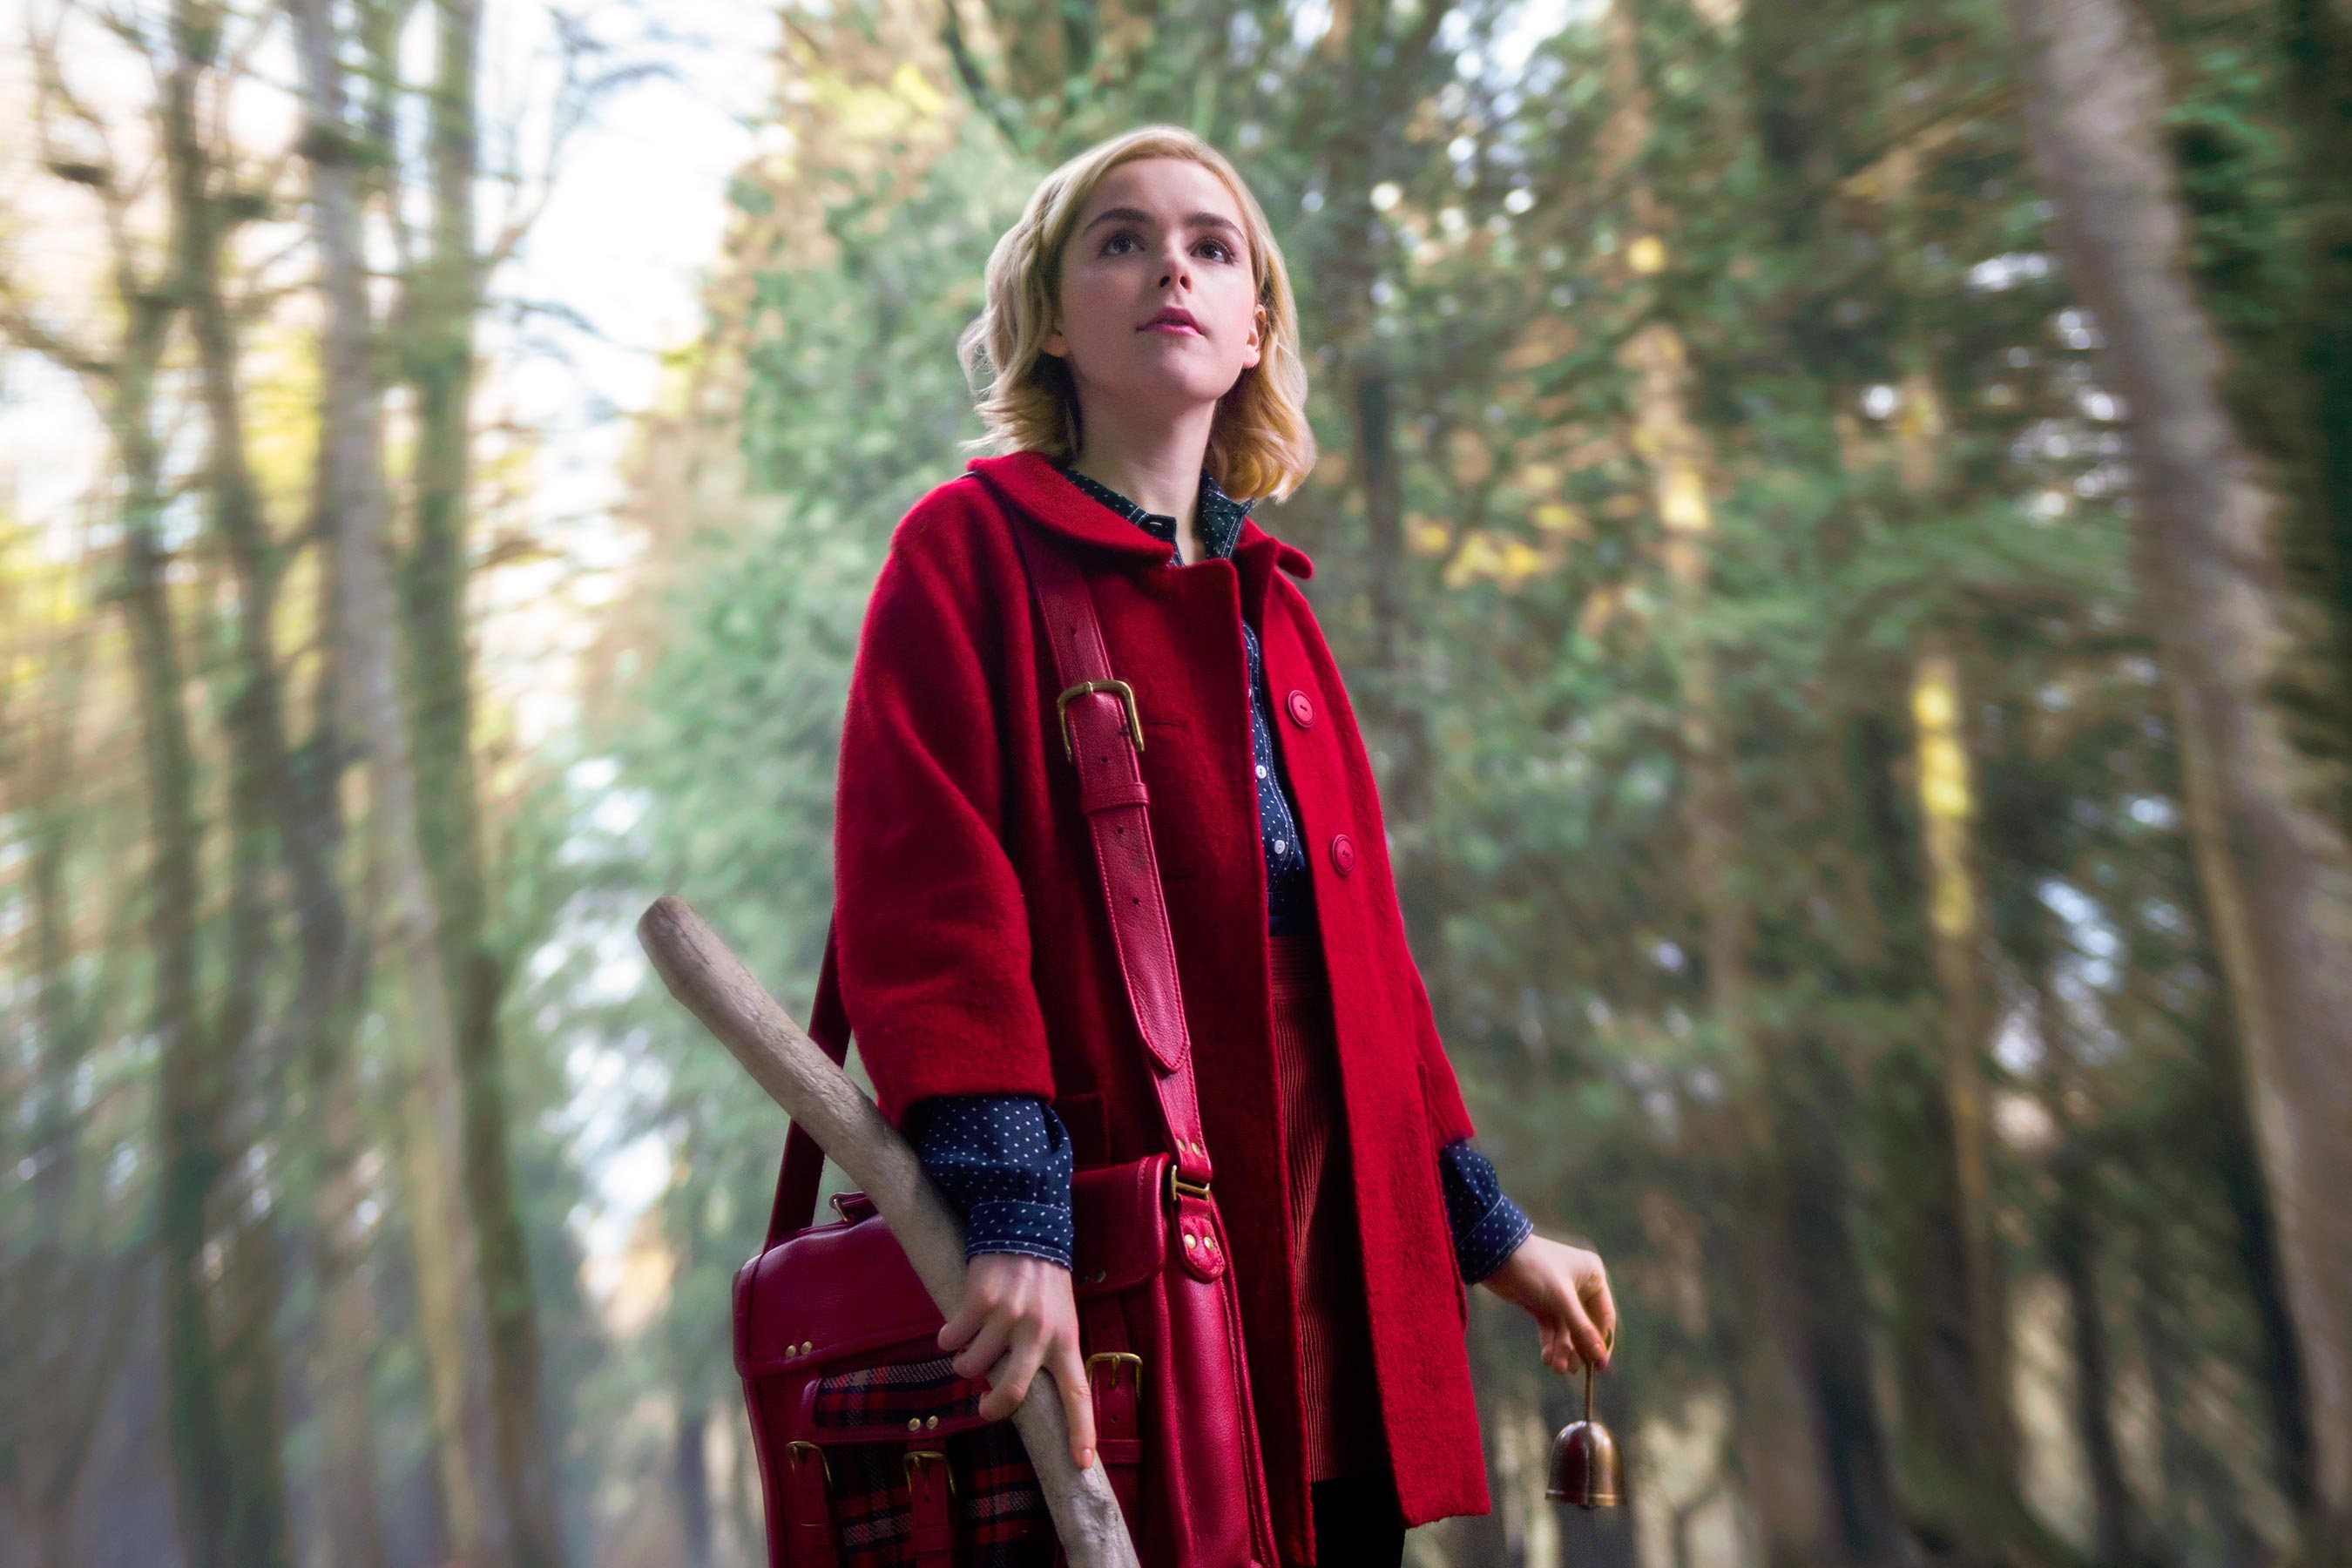 Chilling Adventures of Sabrina: First Look Photos Released by Netflix